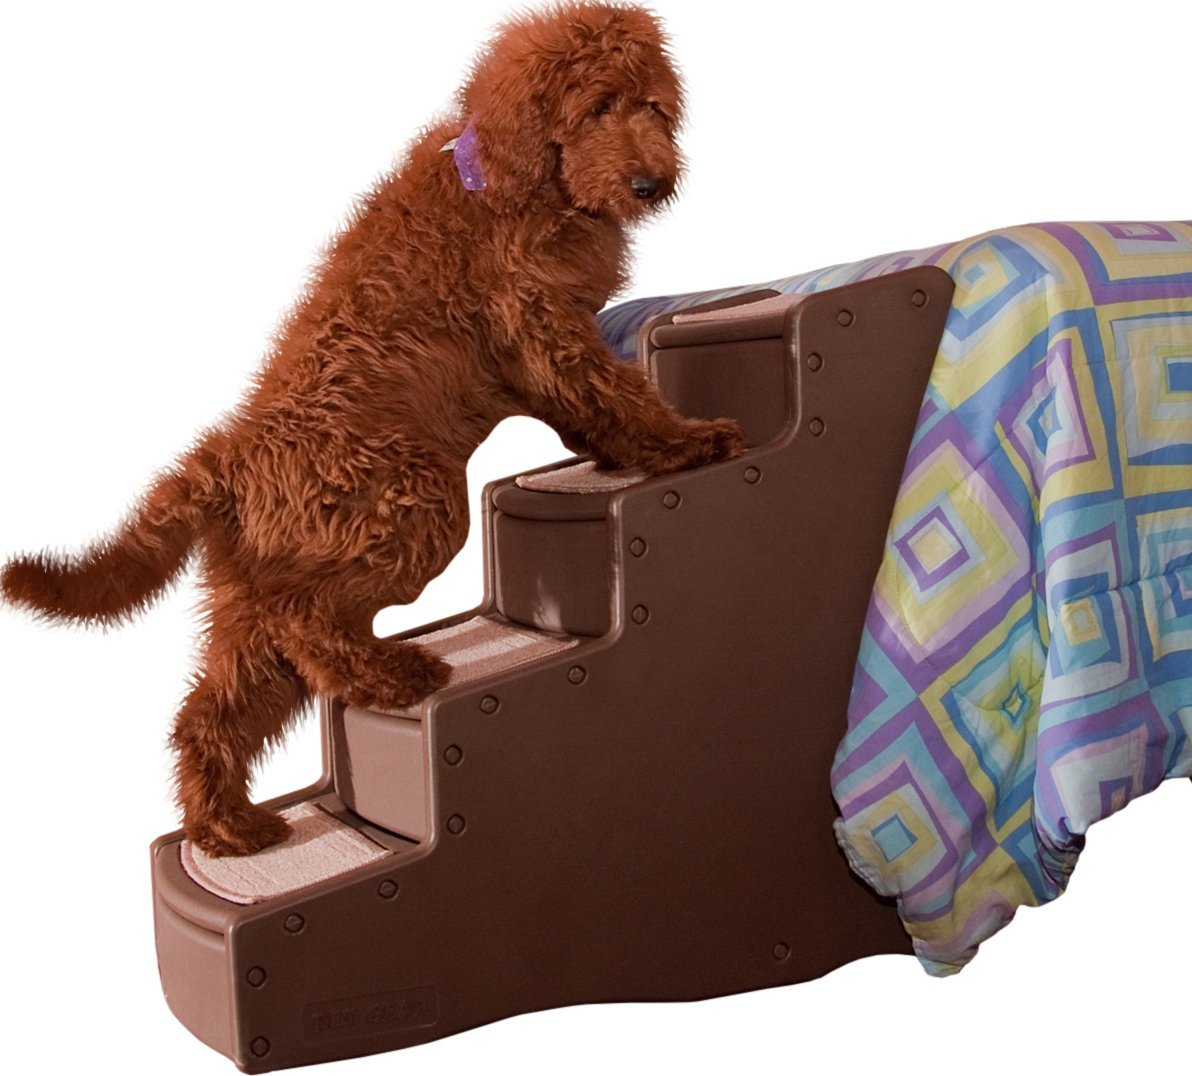 Pet Gear Easy Step IV Pet Stairs, 4-Step for Cats/Dogs, Portable/Lightweight, Sturdy